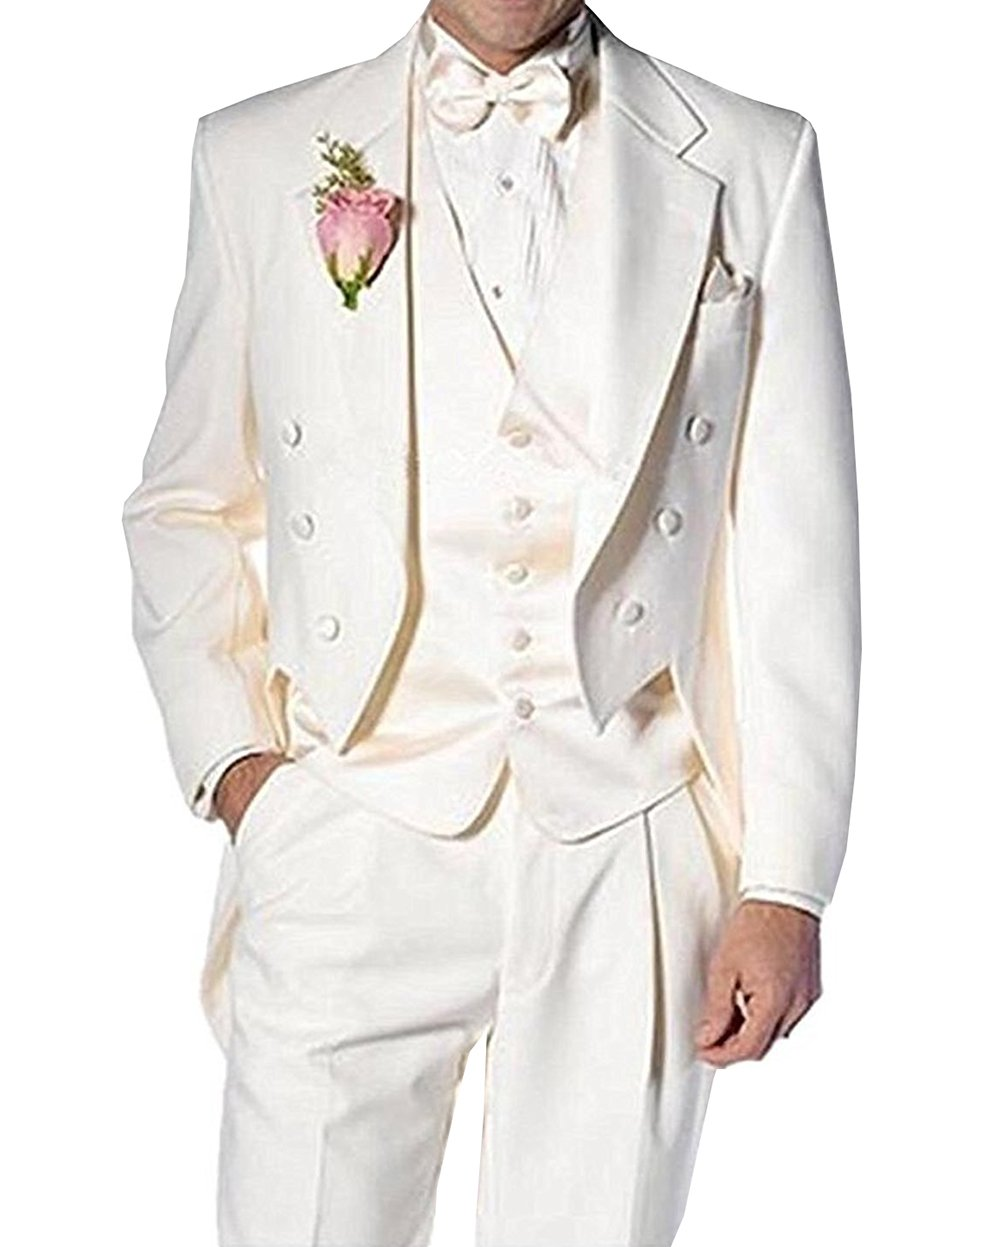 Fitty Lell Men's Suit 3 Piece Formal Tuxedo Groom Jacket Tux Vest & Trousers Set Wedding Suits(42 Regular,Ivory)